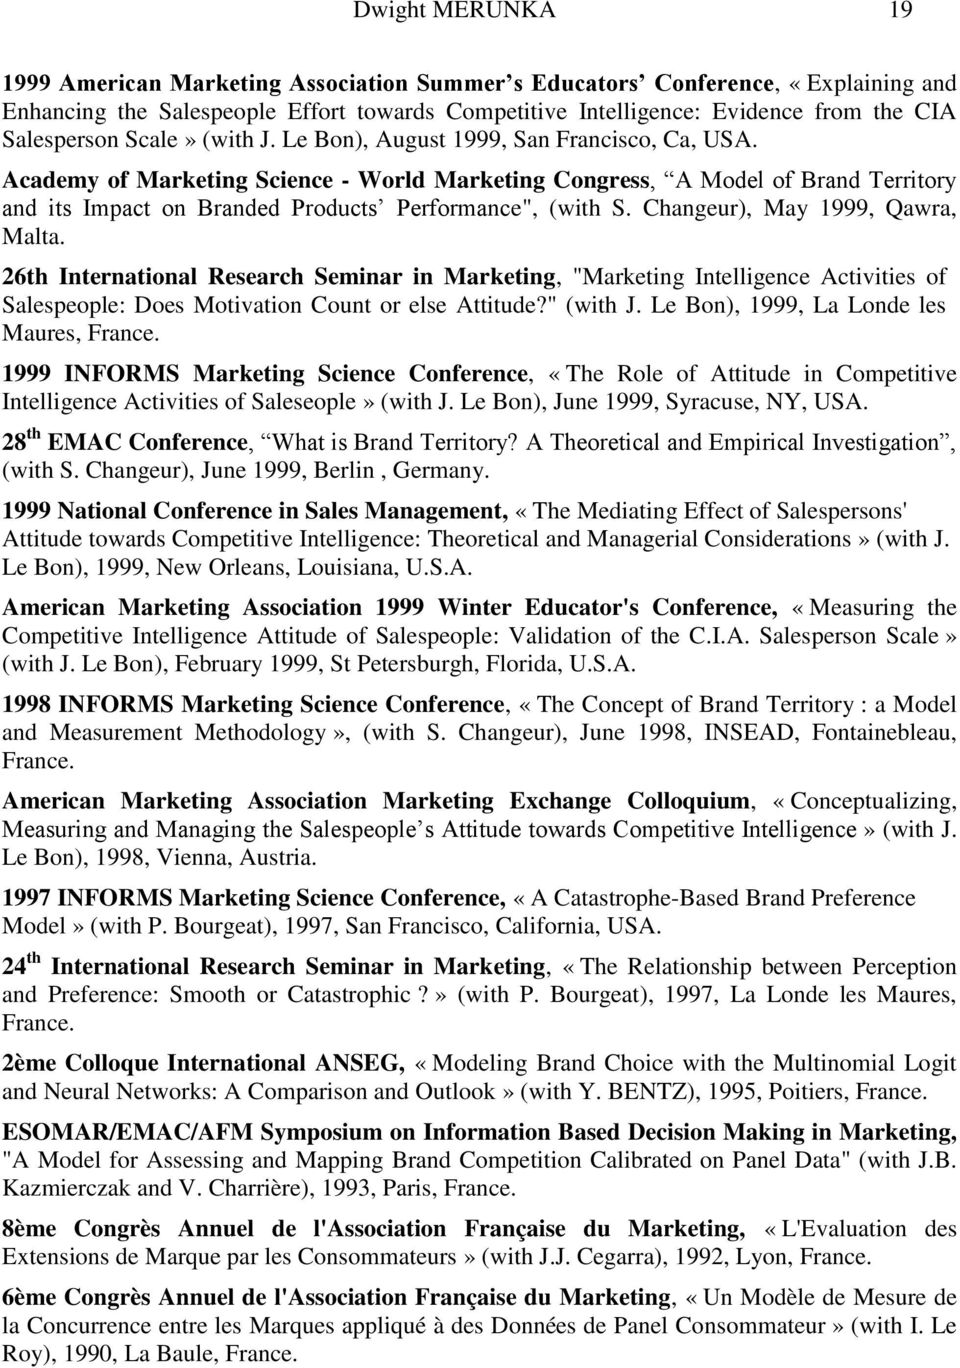 "Academy of Marketing Science - World Marketing Congress, A Model of Brand Territory and its Impact on Branded Products Performance"", (with S. Changeur), May 1999, Qawra, Malta."